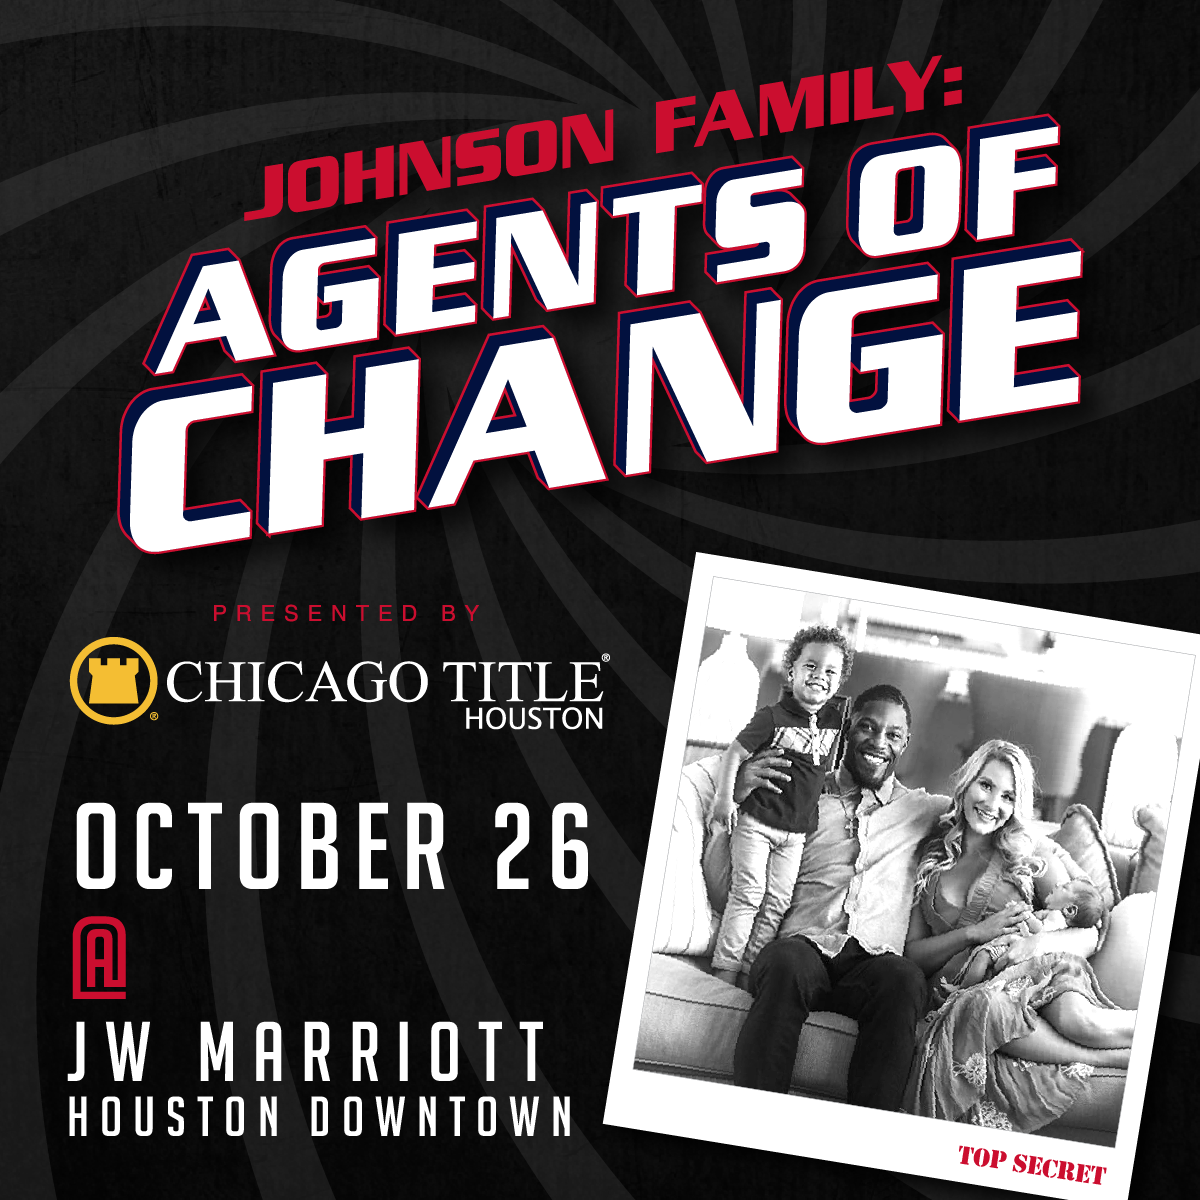 DaJohnson 10.26.2020 Agents of Change Social Graphic Invite